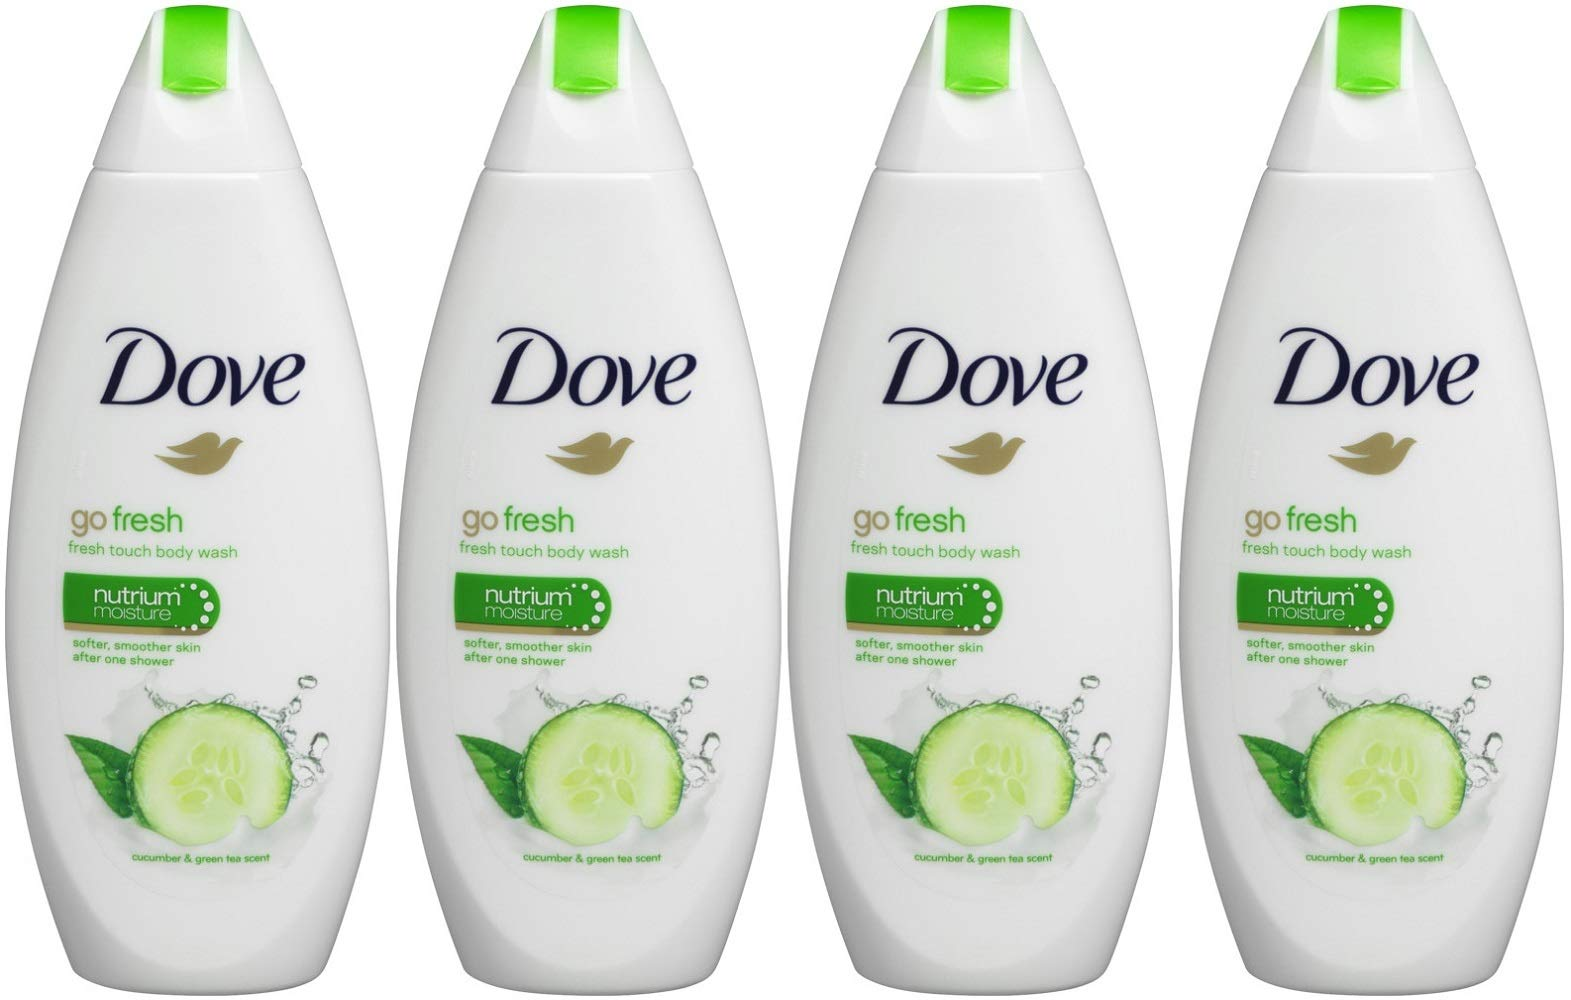 Dove Go Fresh Cool Moisture Fresh Touch Body Wash, Cucumber and Green Tea, 16.9 Oz / 500 Ml (Pack of 4) International Version by Dove